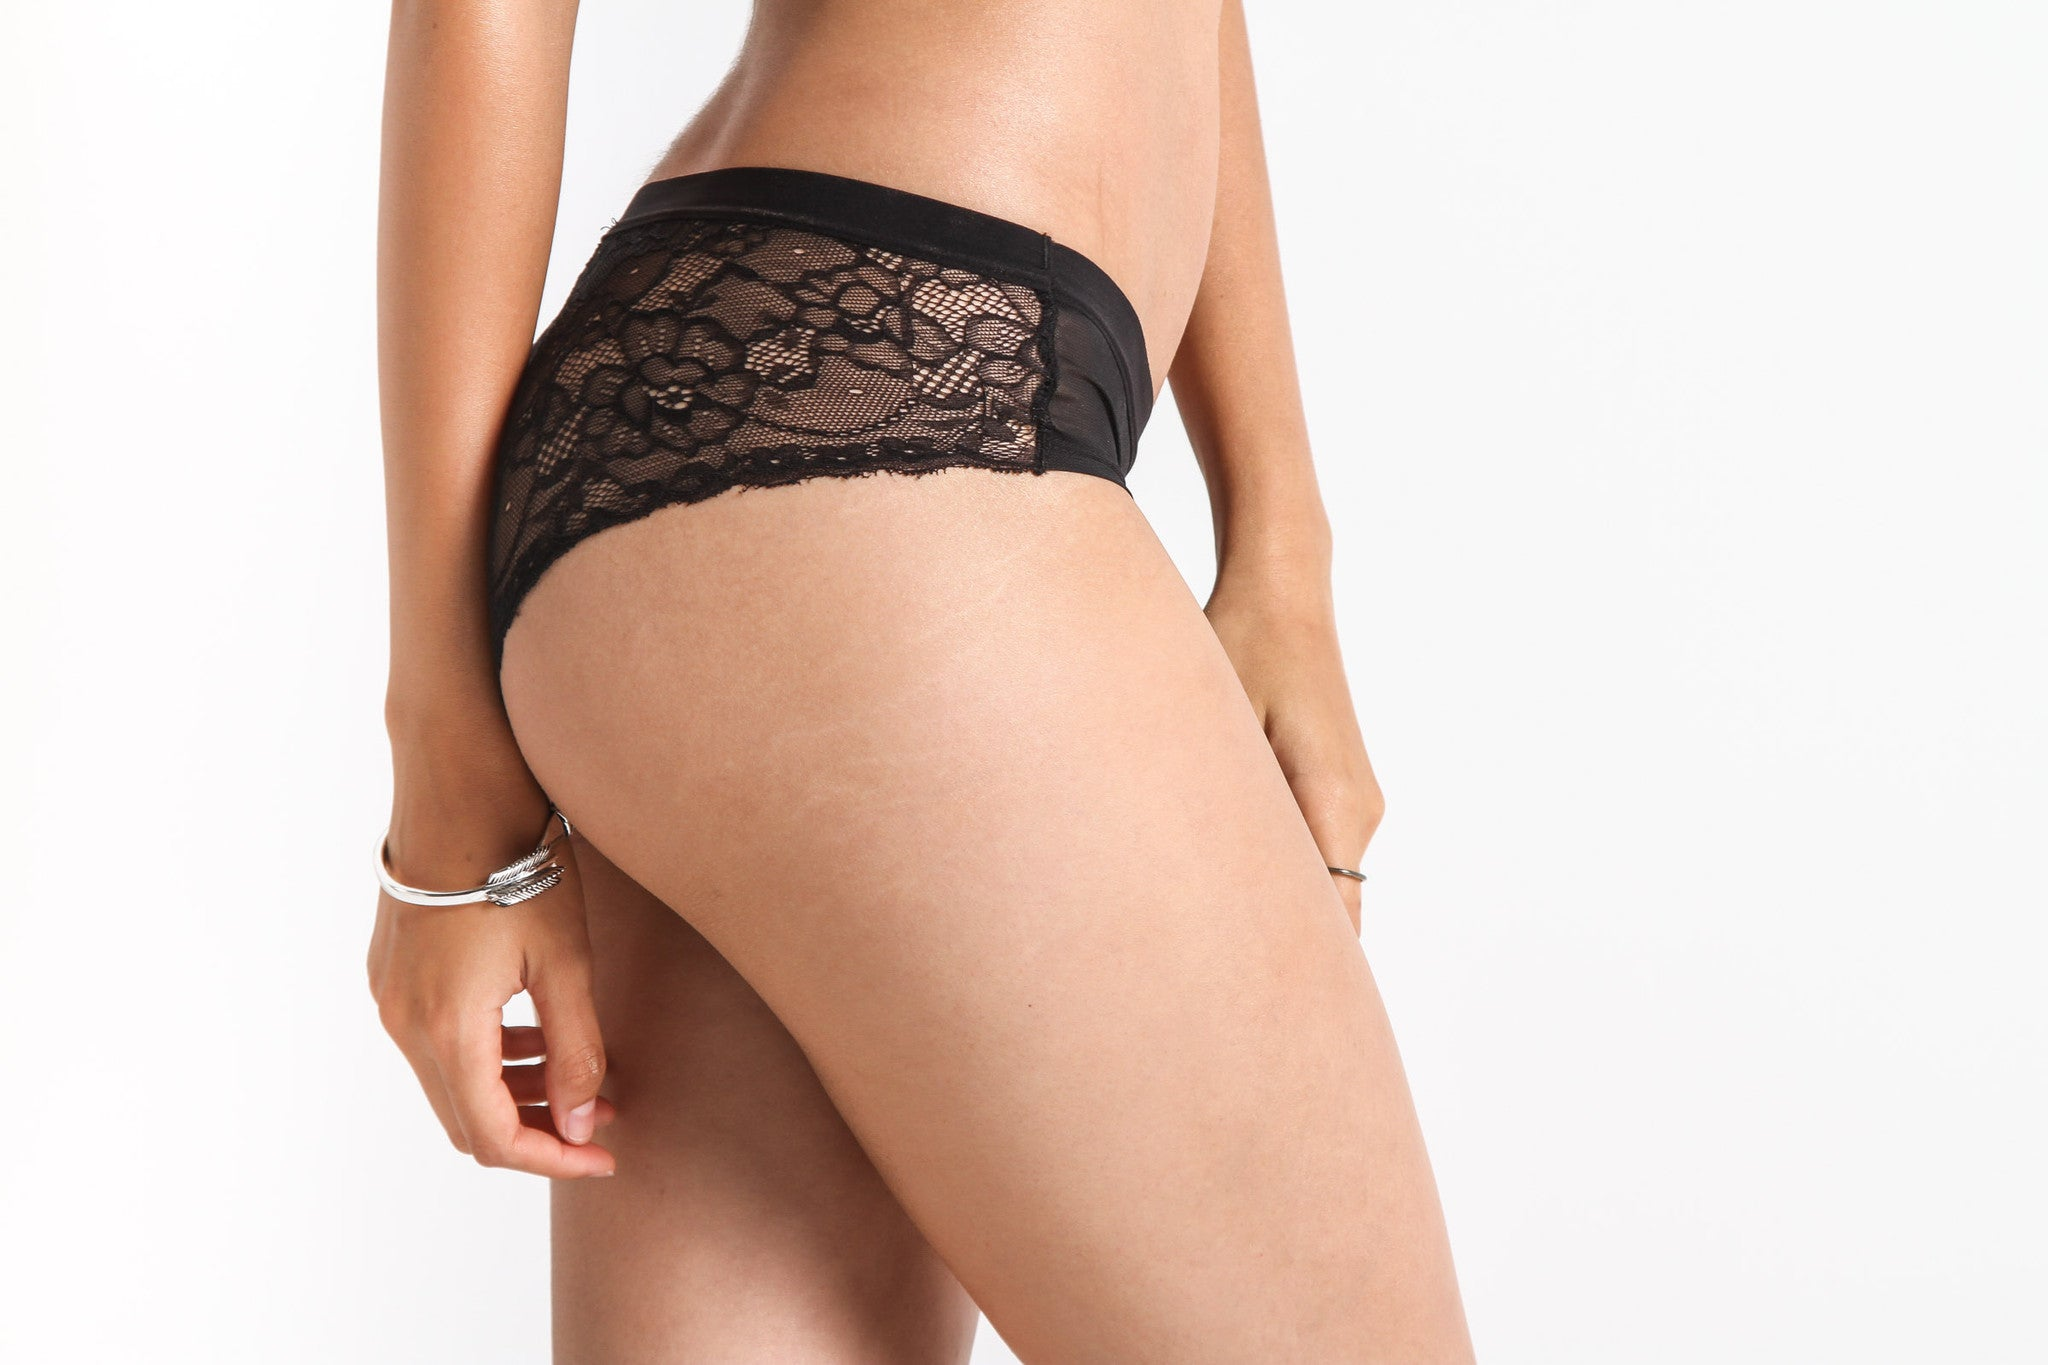 Women's Sheer Thing Cheeky Lace Panty (Black)